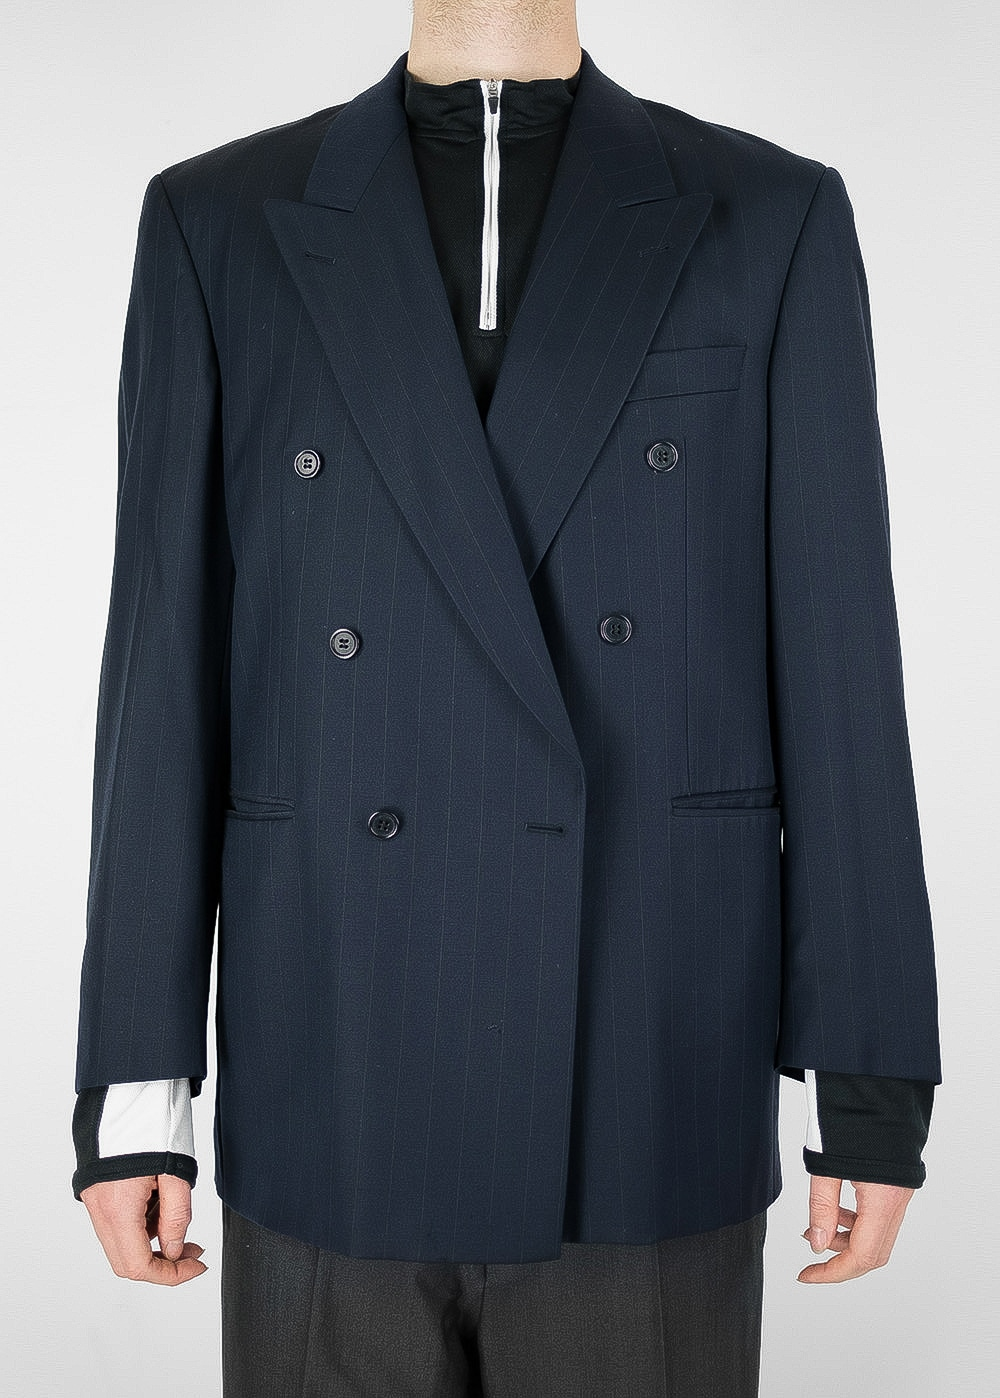 Captain Navy Jacket 9